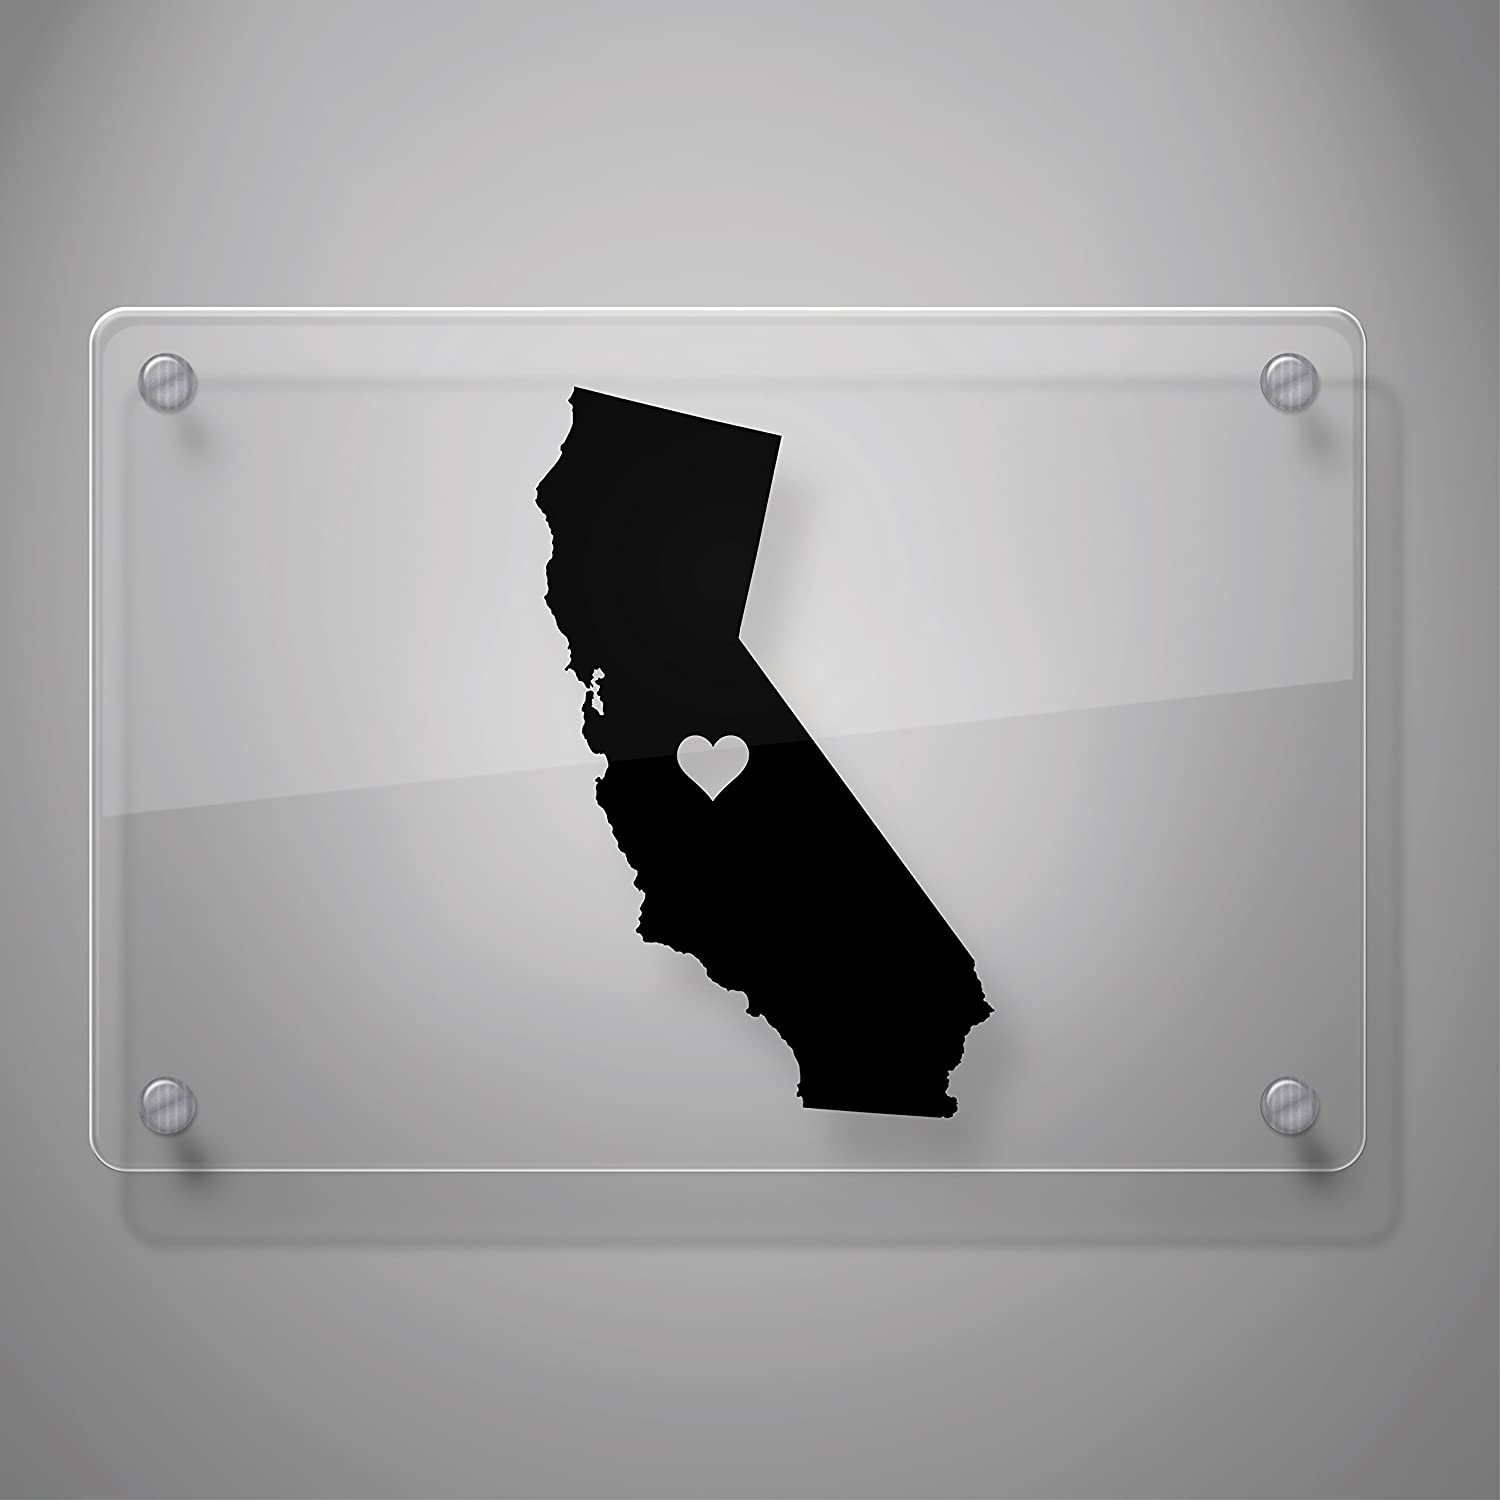 # 567 # 567 6 x 3.8 Yoonek Graphics Love California Decal Sticker for Car Window Laptop and More 6 x 3.8, White Laptop and More